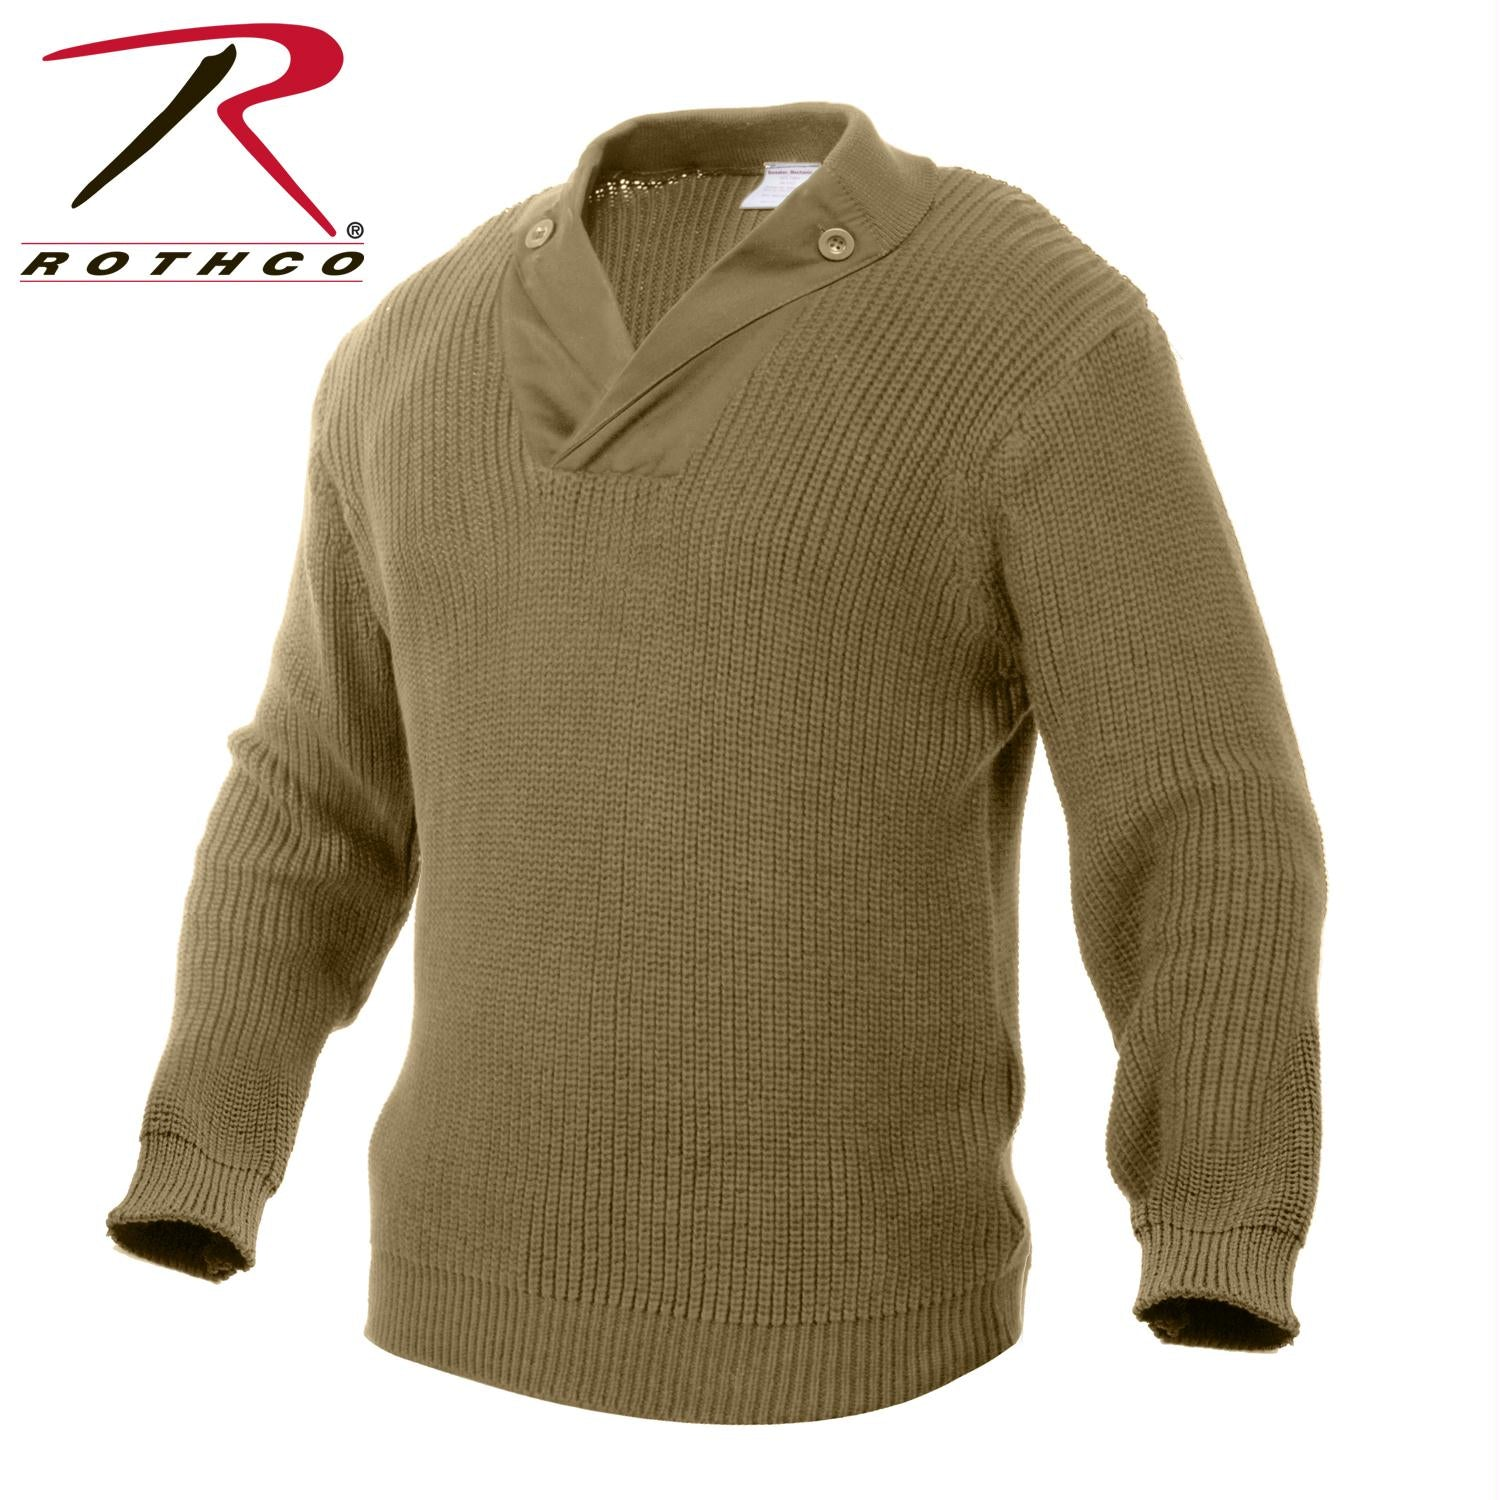 Rothco WWII Vintage Mechanics Sweater - Khaki / L